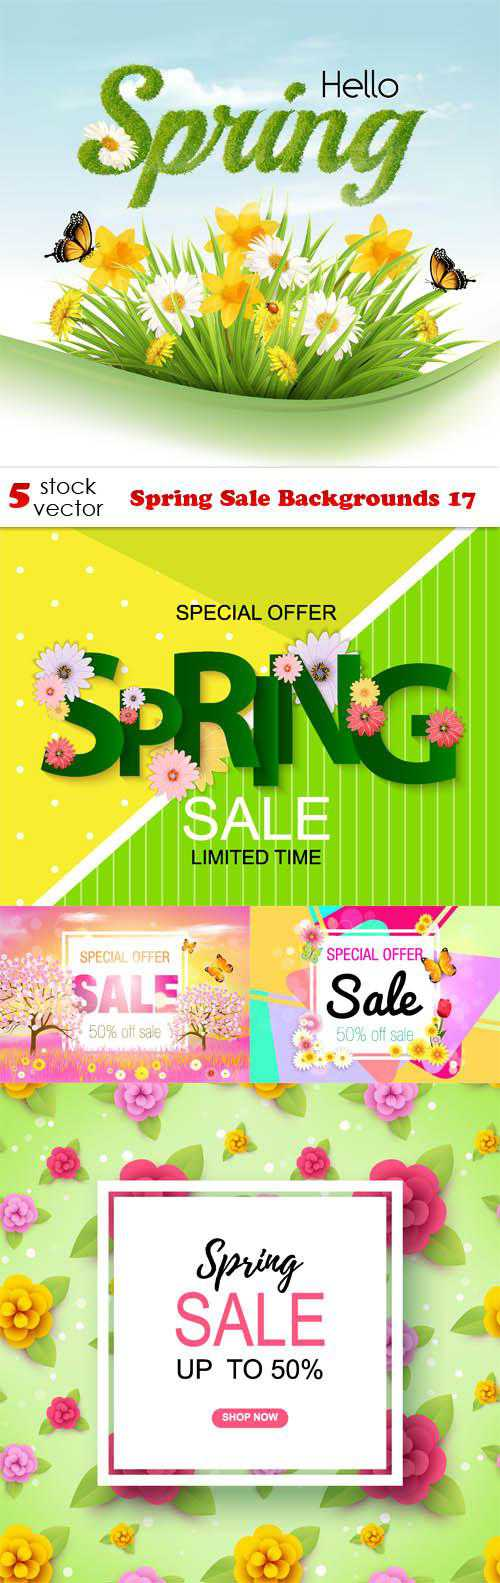 Spring Sale Backgrounds 17